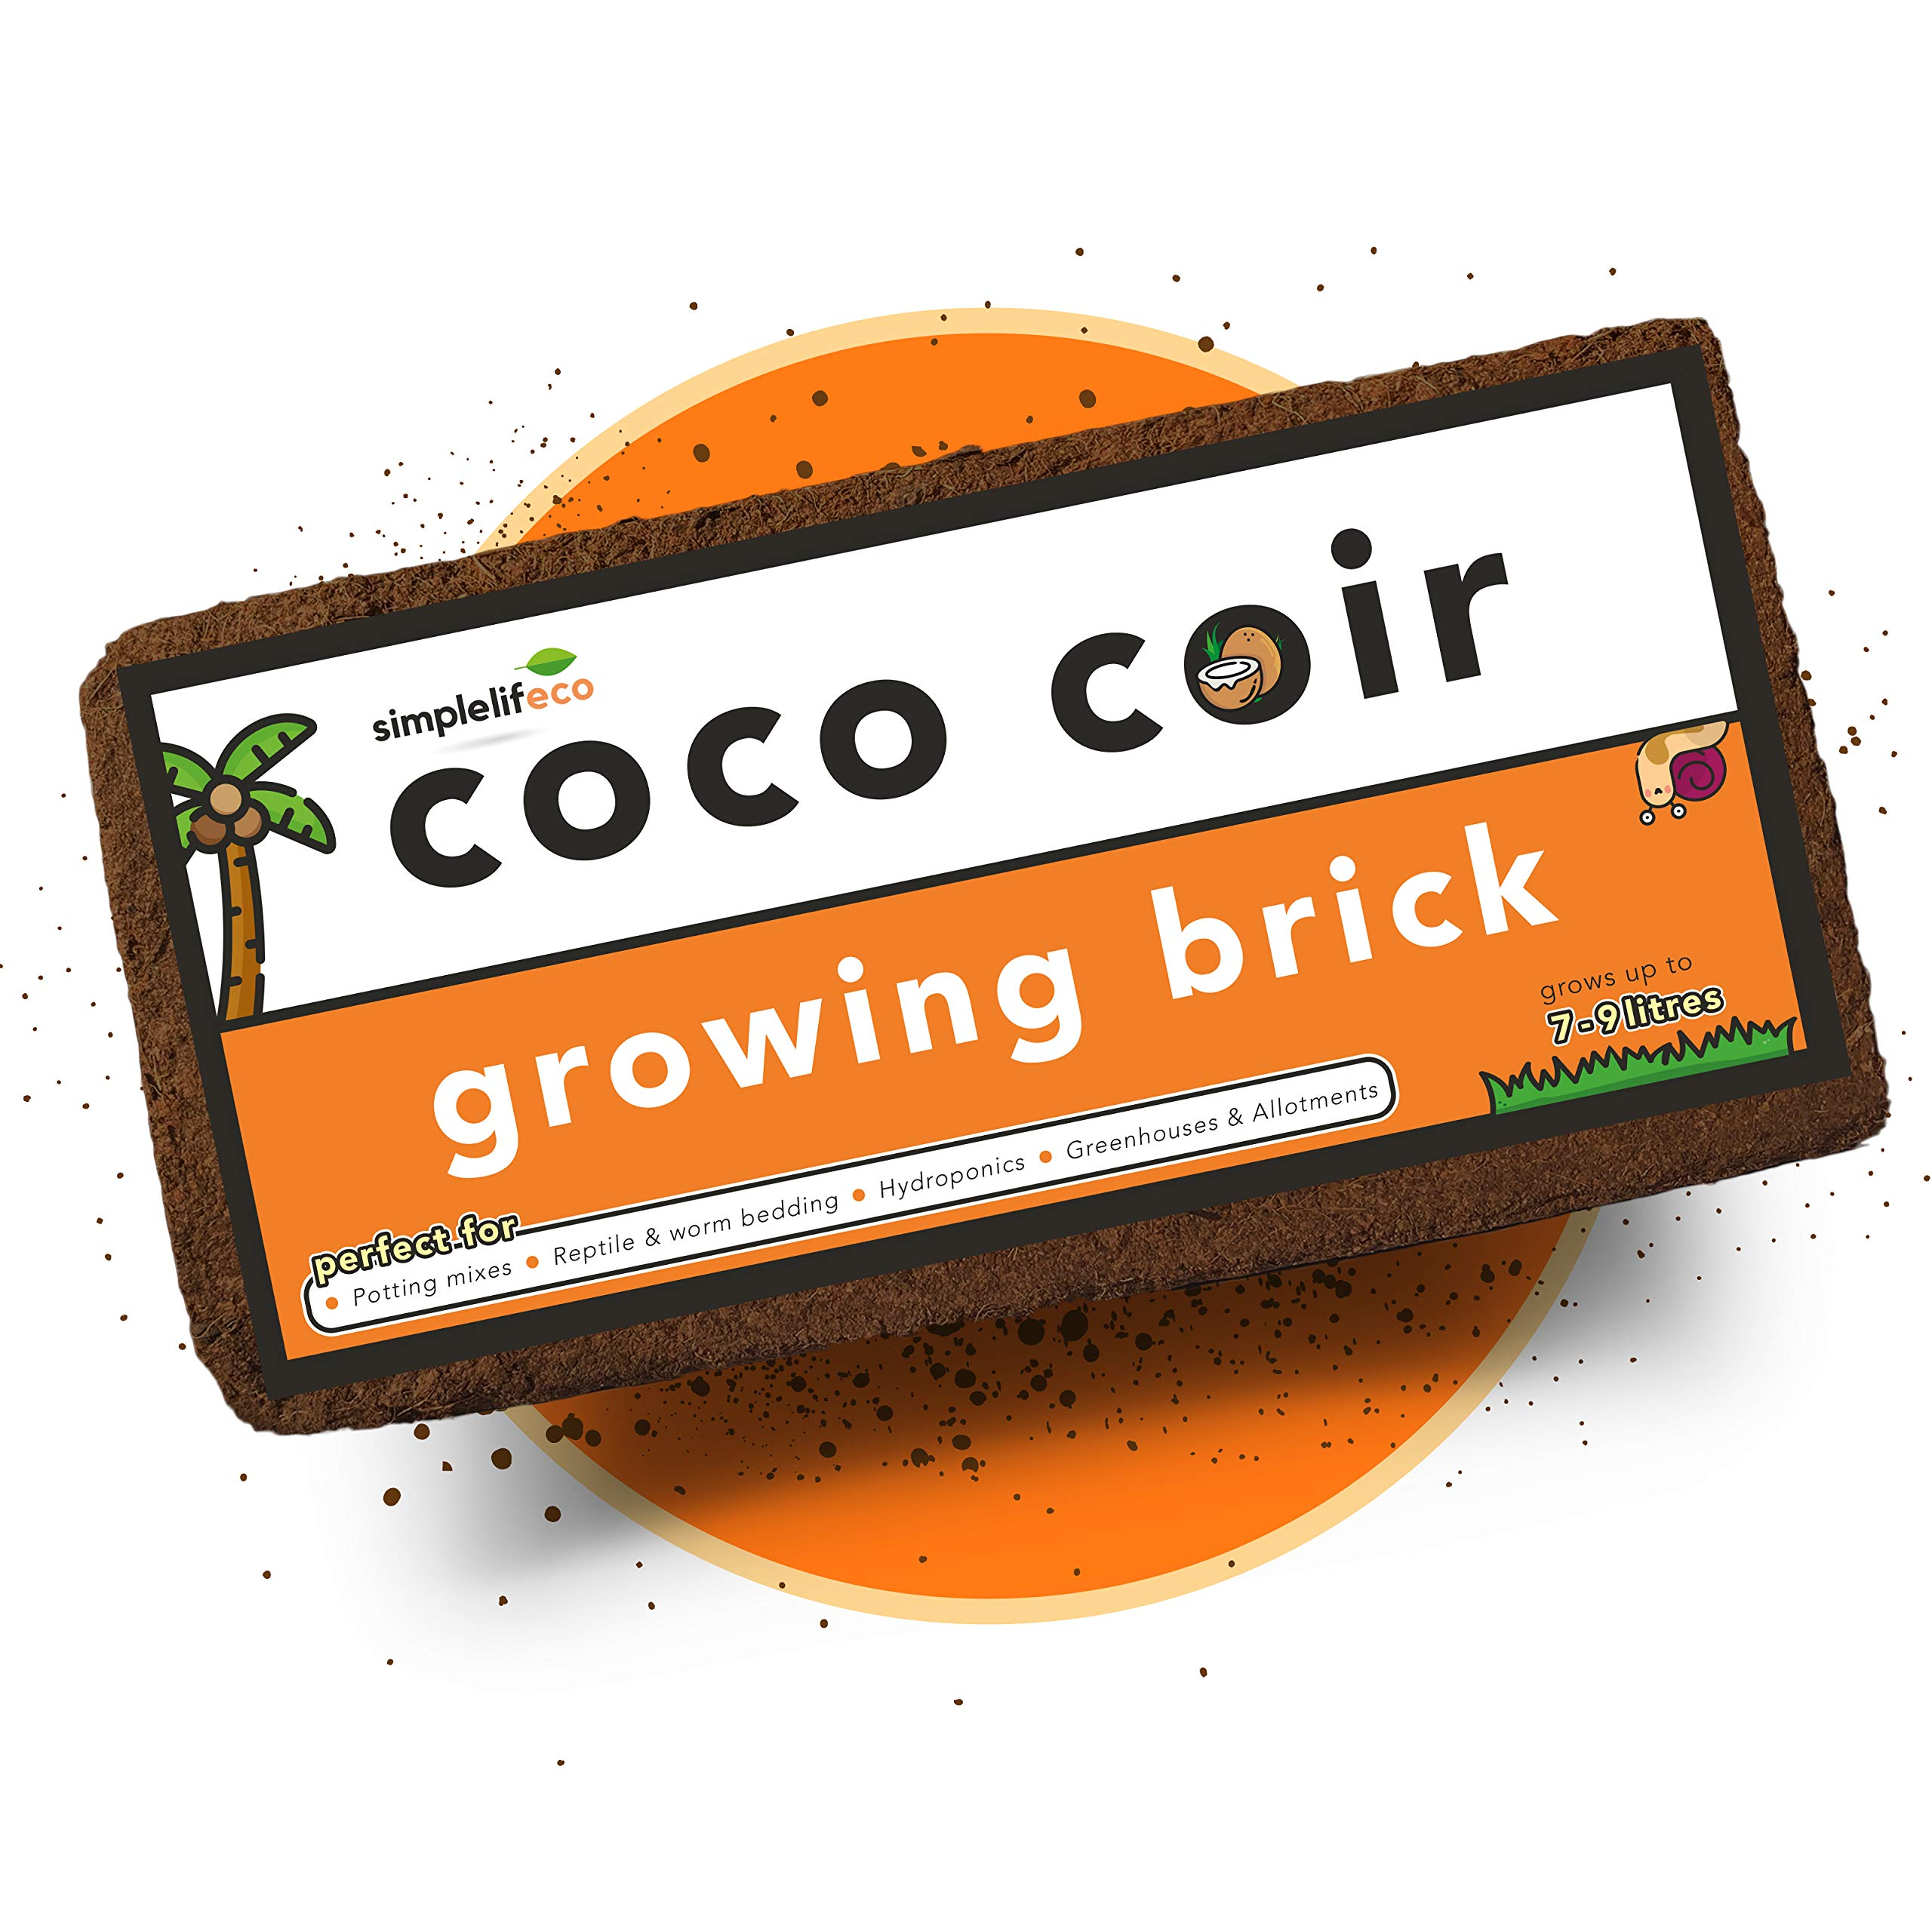 simplelifeco UK Coconut Coir Soil Growing Brick Compost Block | Grows up to 9 Litres | 100% Sustainable Peat-Free Planting Medium (Single Pack)